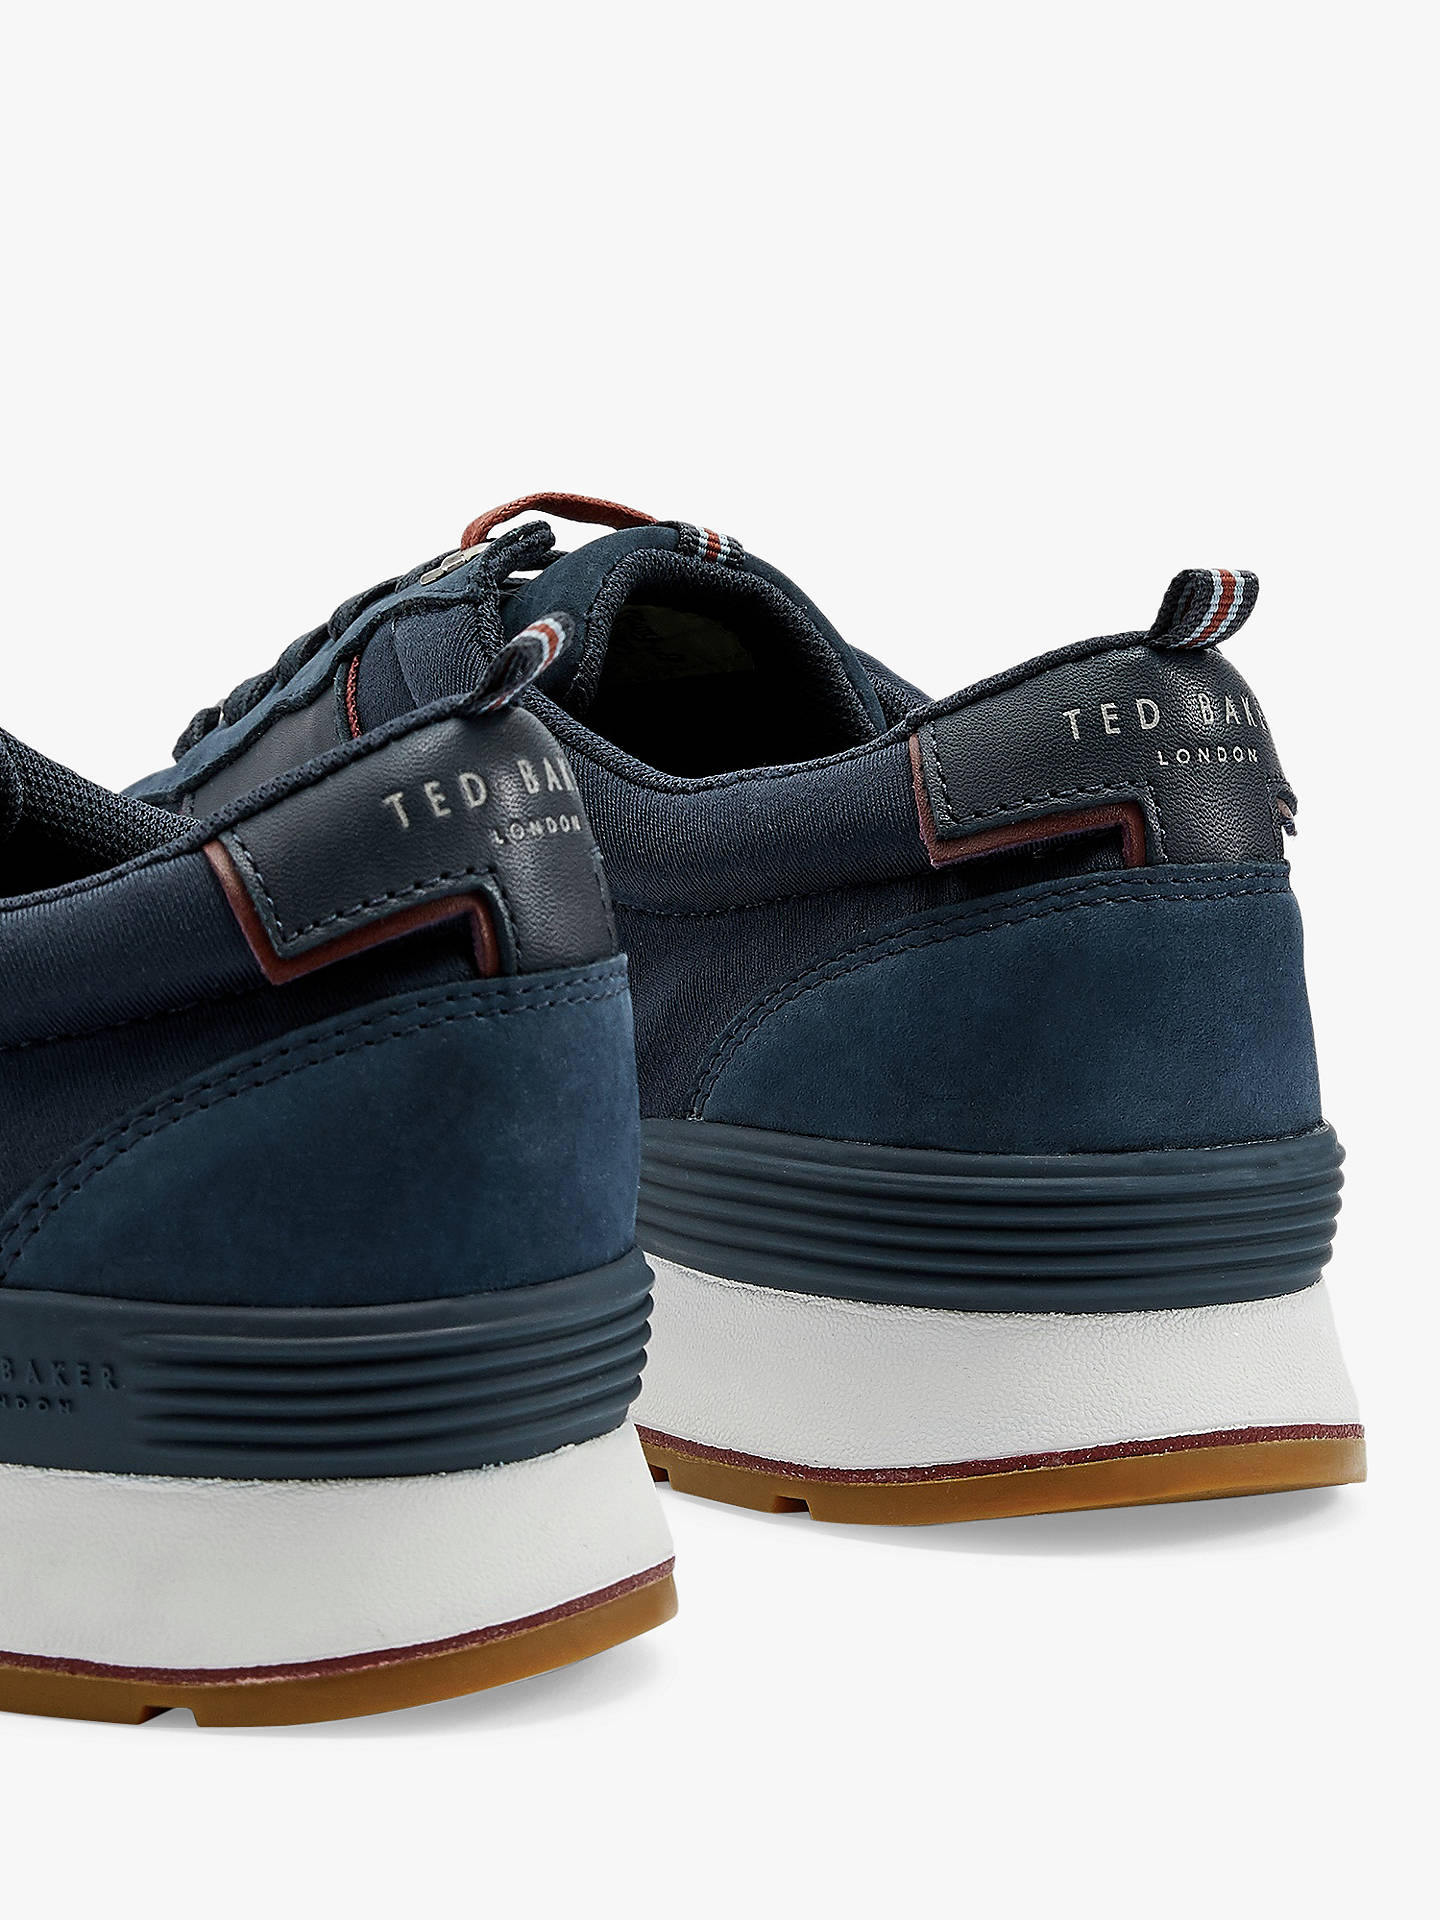 Ted Baker Lhennis Leather Trainers at John Lewis & Partners